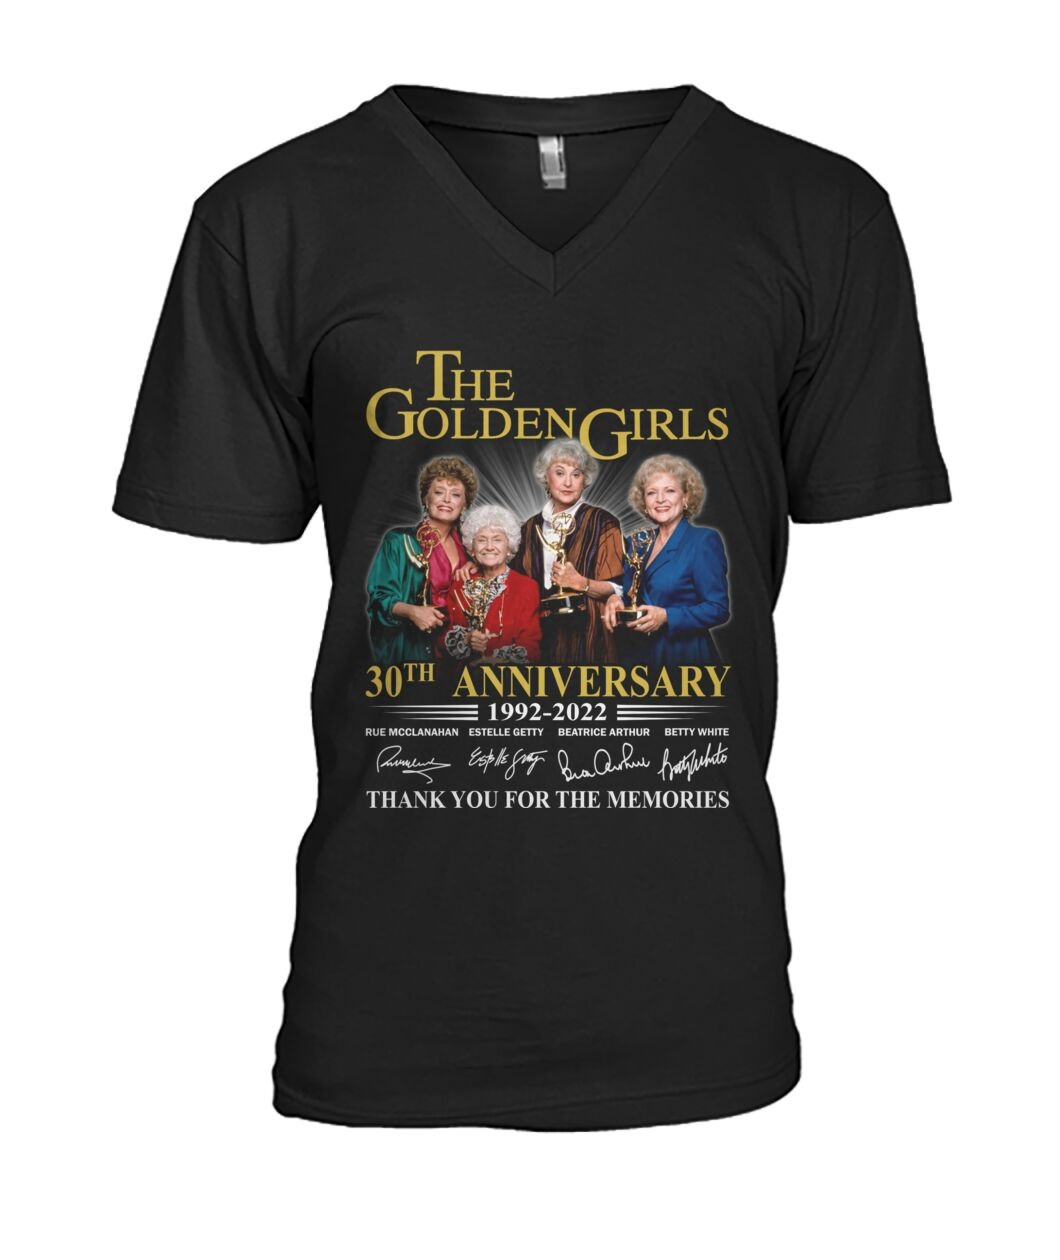 The golden girls 30th anniversary 1992 2022 thank you for the memories v-neck